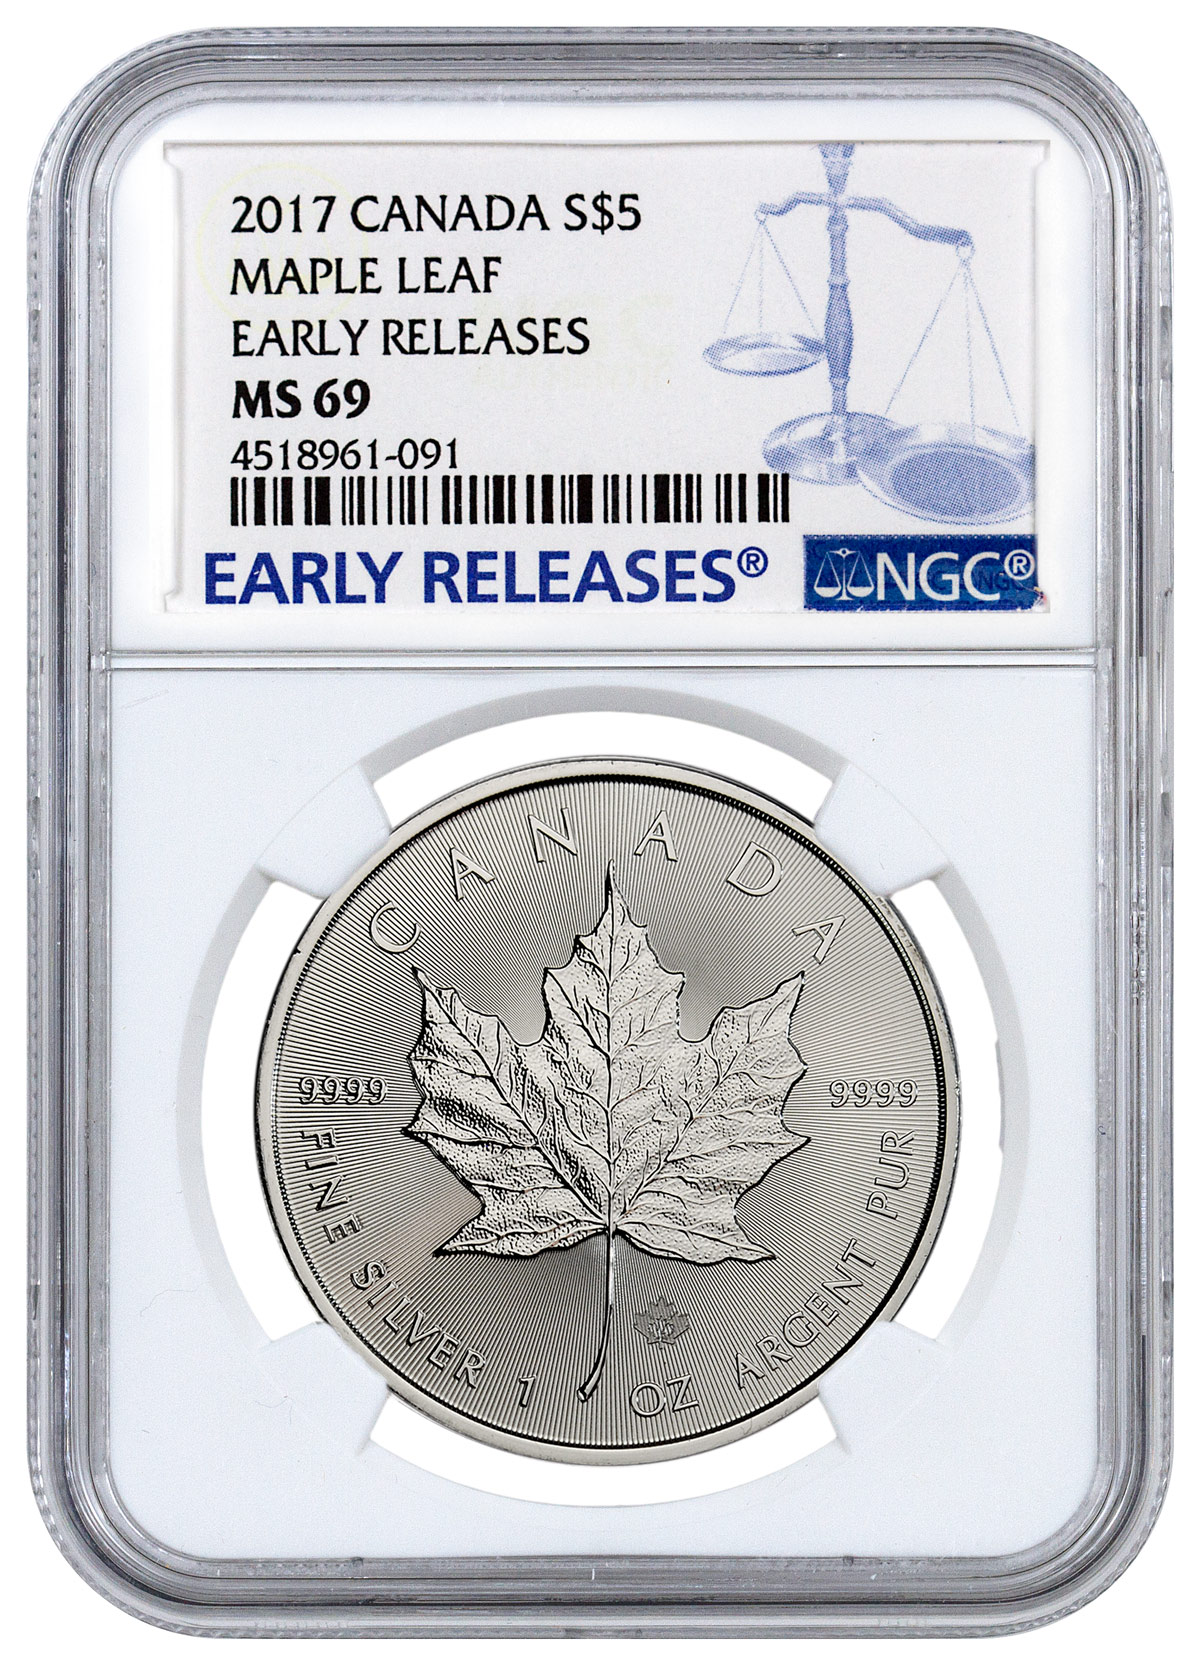 2017 Canada 1 Oz Silver Maple Leaf 5 Ngc Ms69 Er